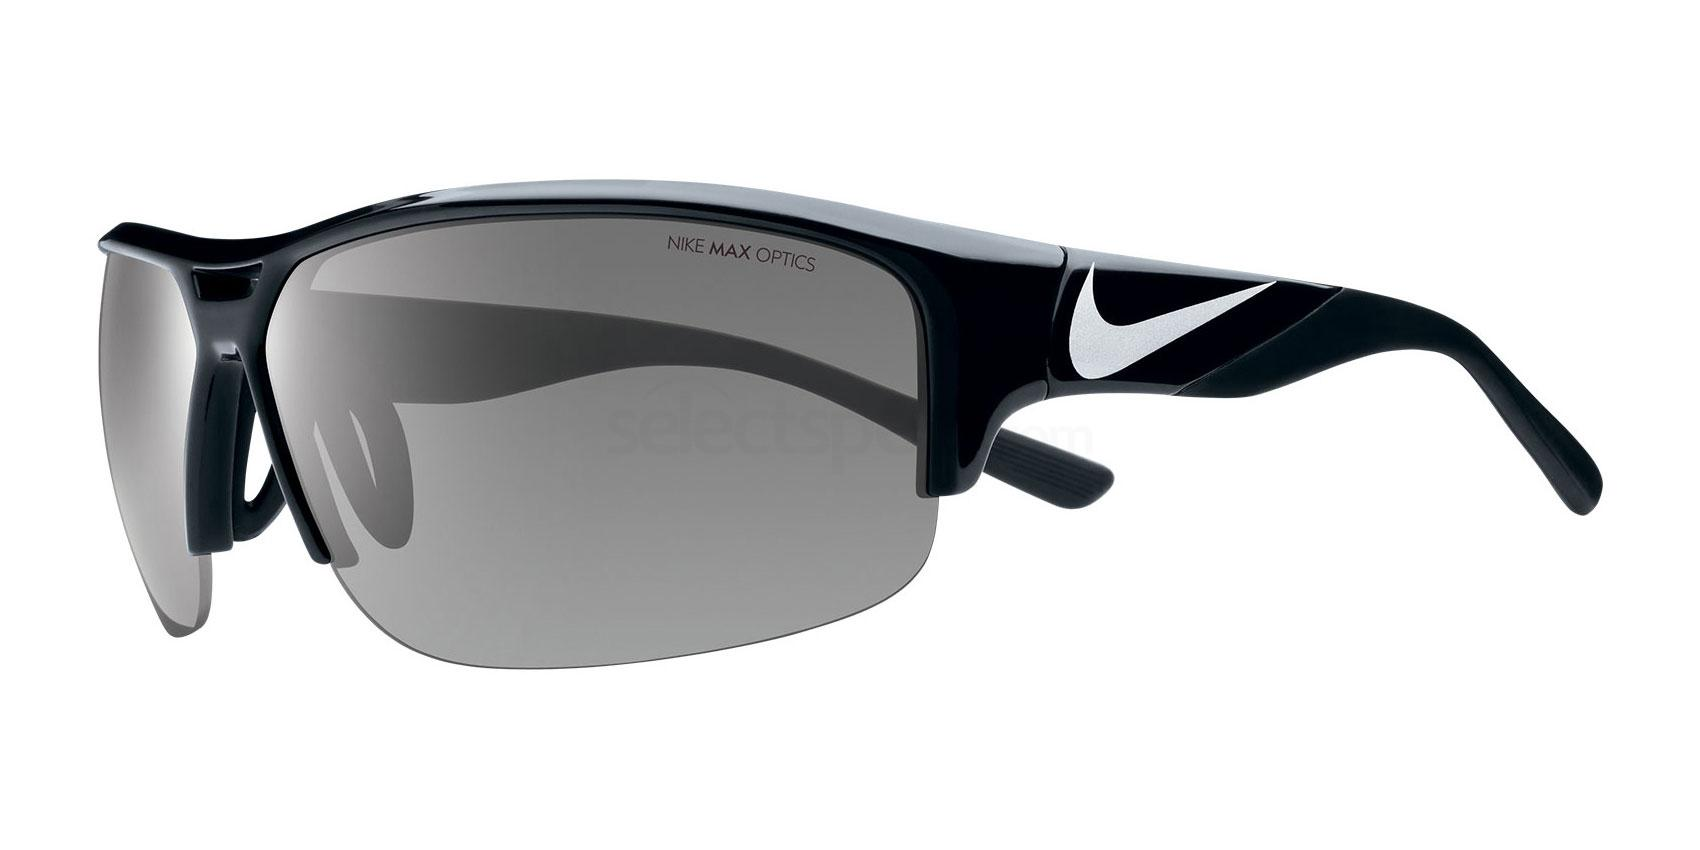 001 NIKE GOLF X2 EV0870 Sunglasses, Nike